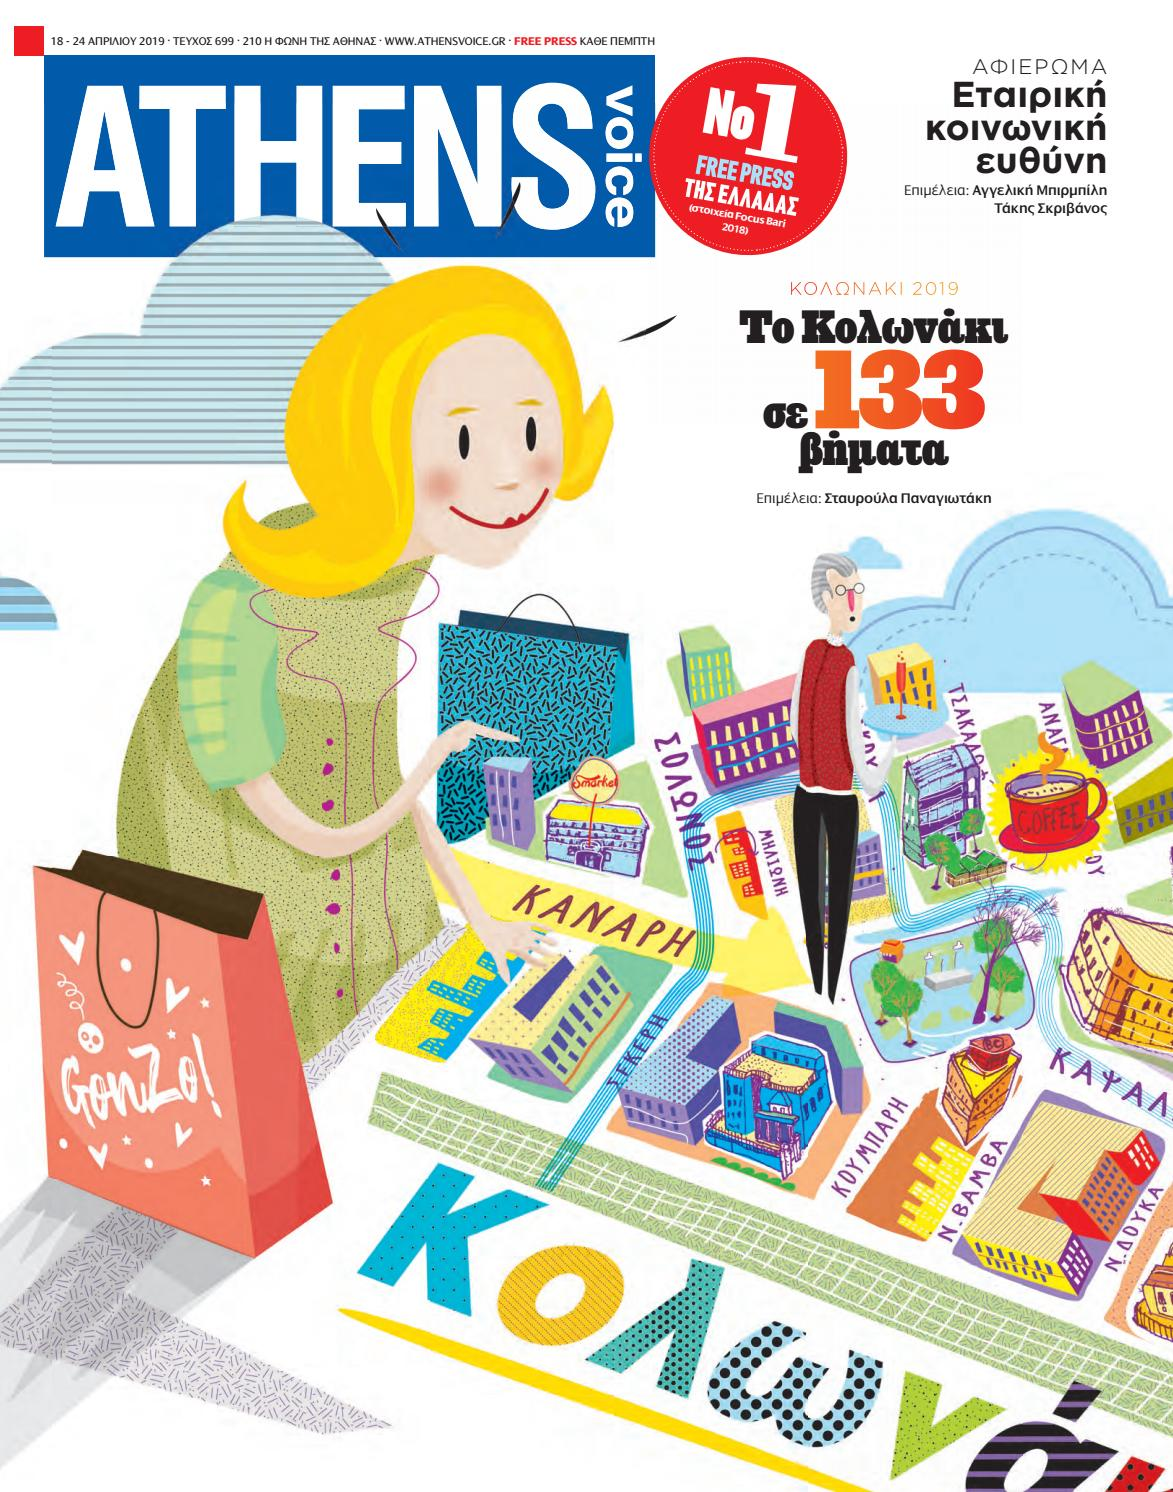 557c8d172d0 Athens Voice 699 by Athens Voice - issuu